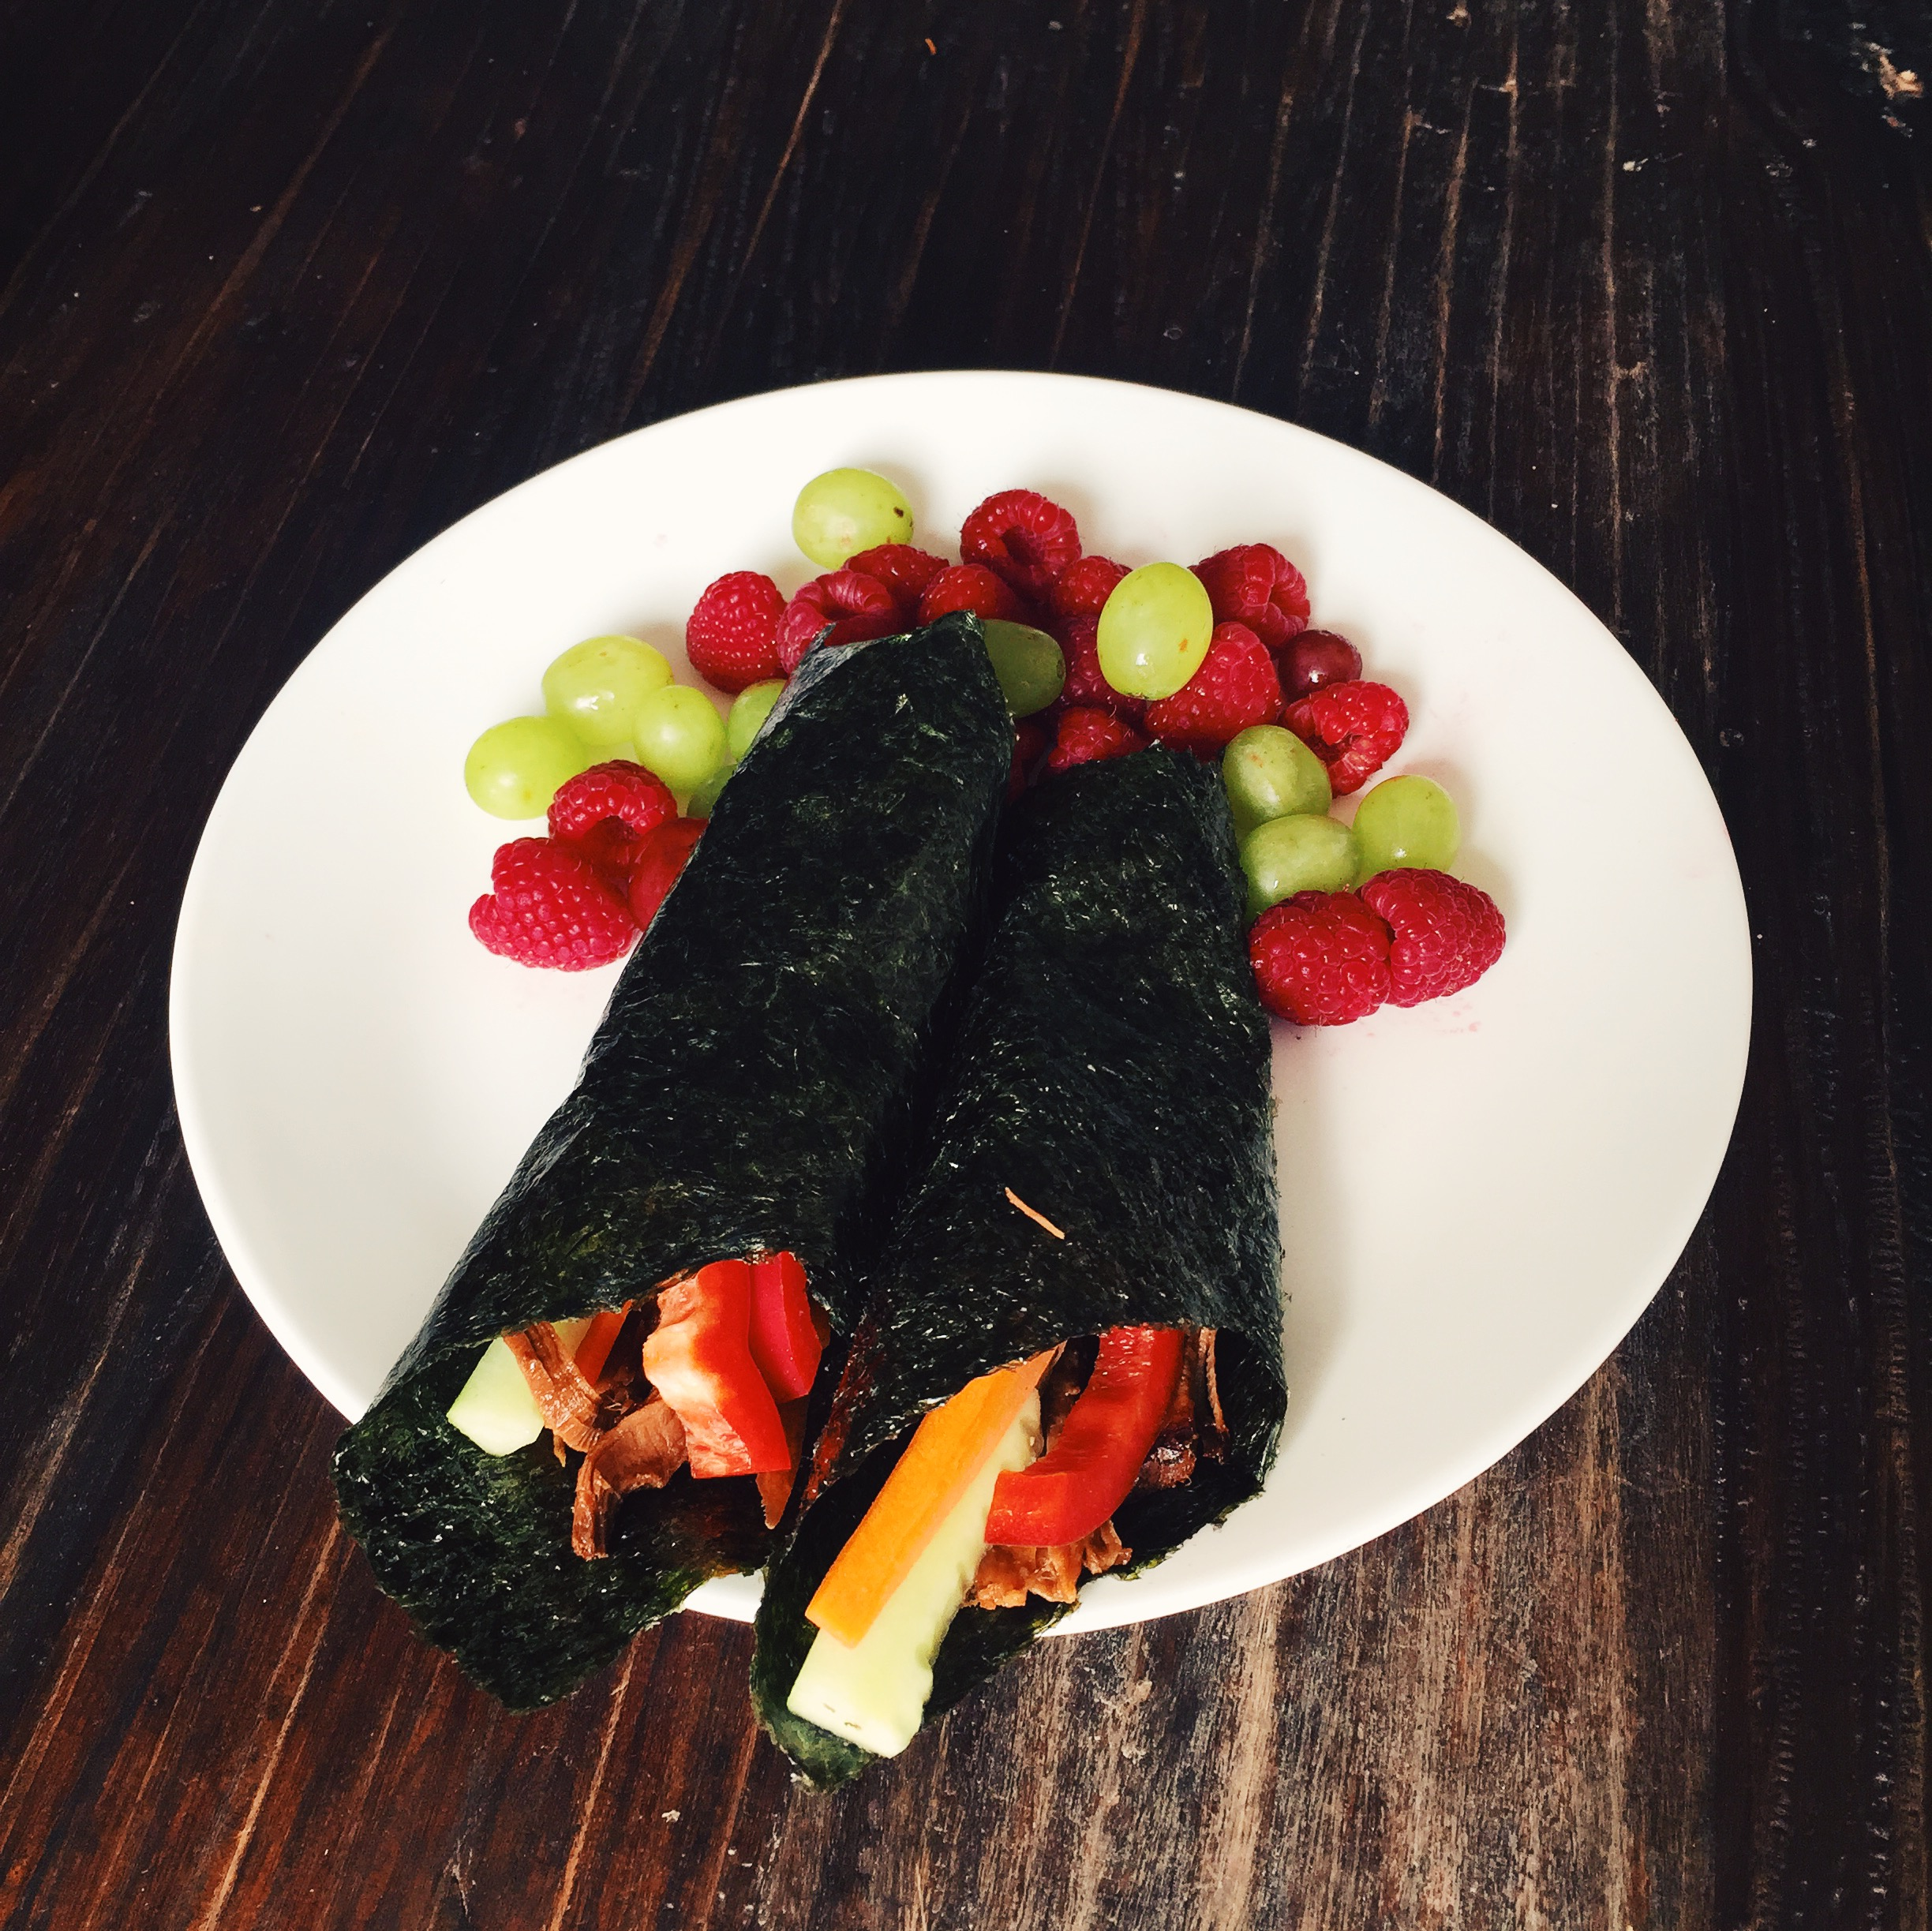 Pulled pork wraps with fresh fruit